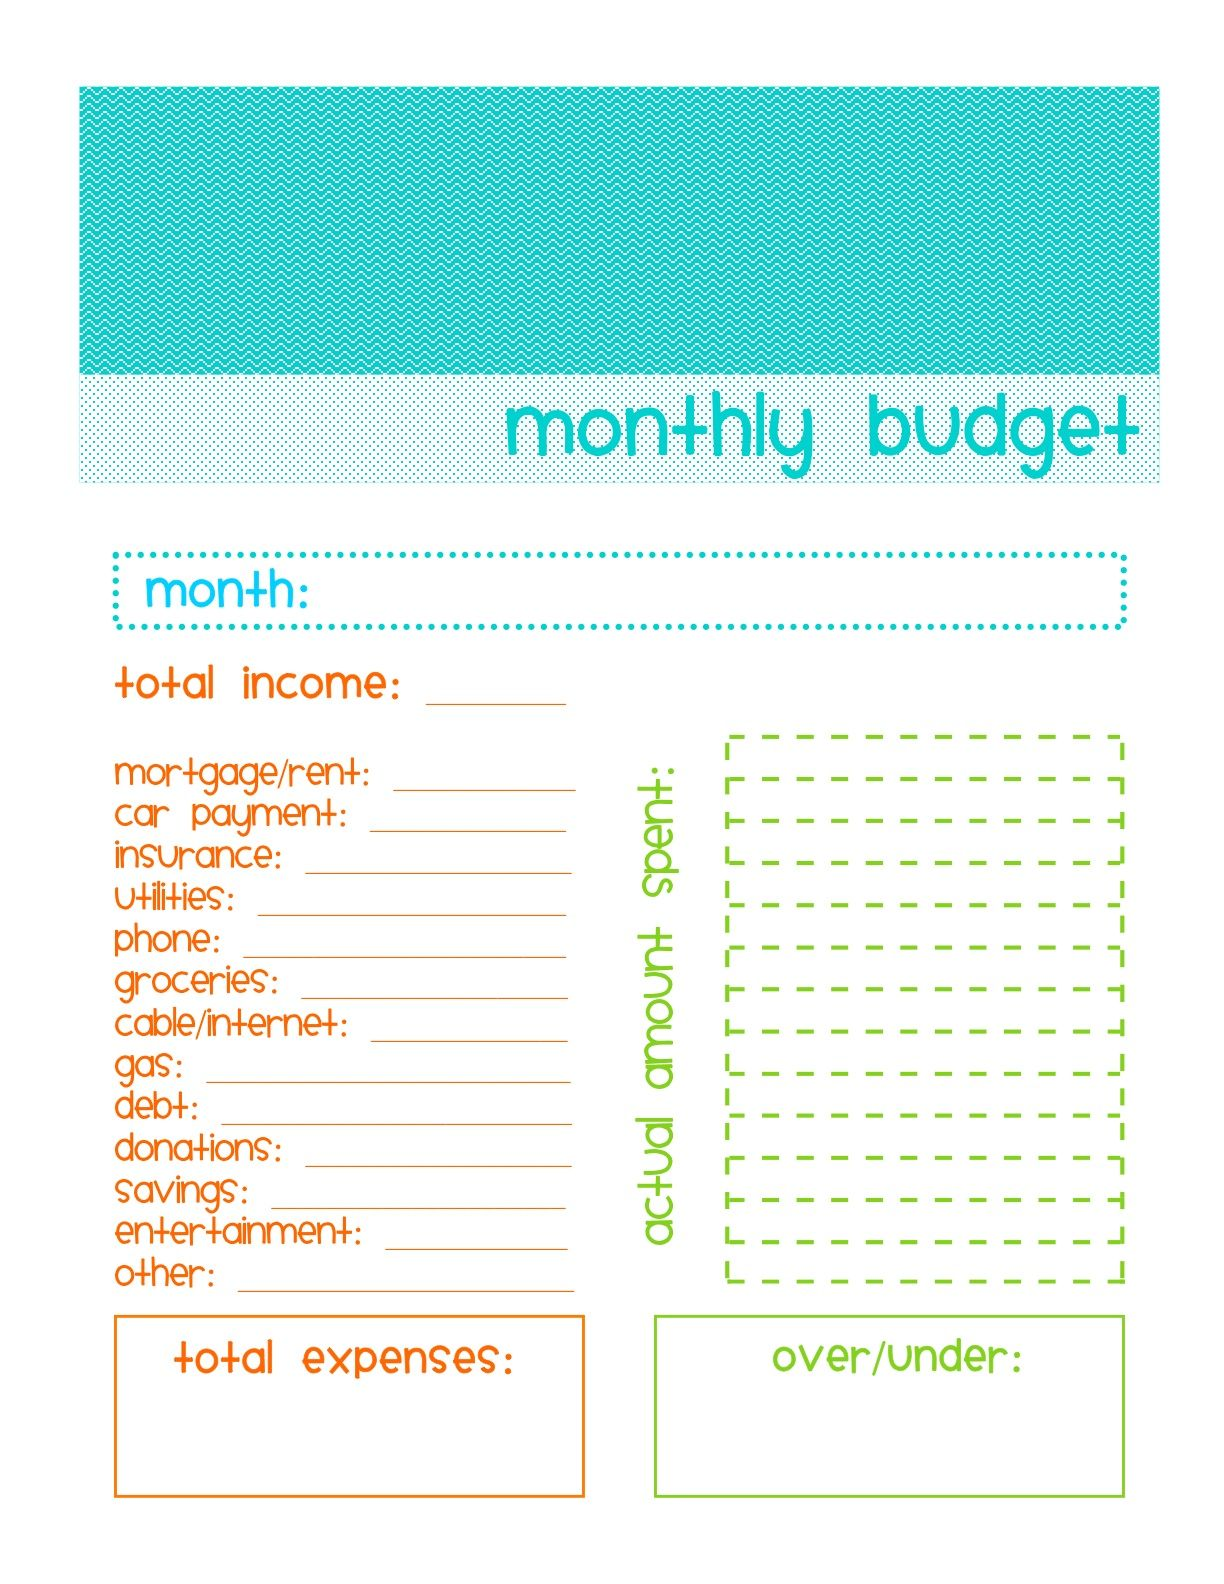 Worksheets Simple Budget Worksheet simple budget template printable join the conversation cancel reply